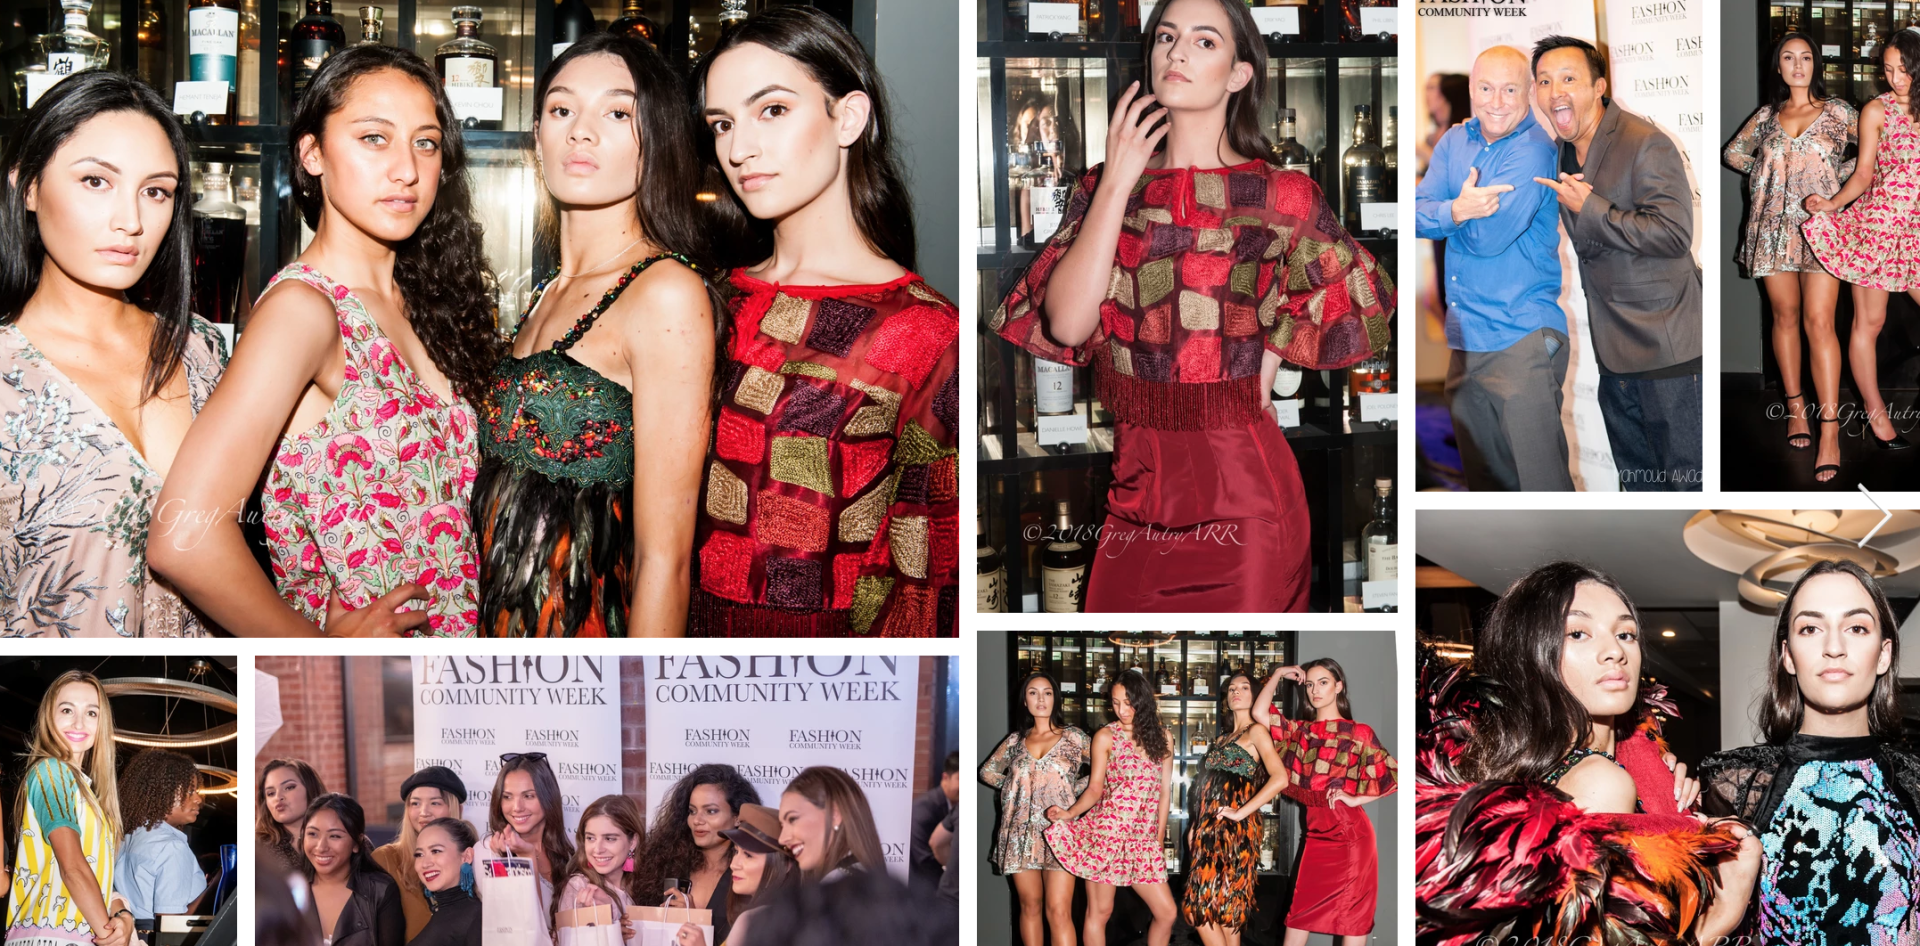 Previous Fashion Community Events, been running for over 5 years now!